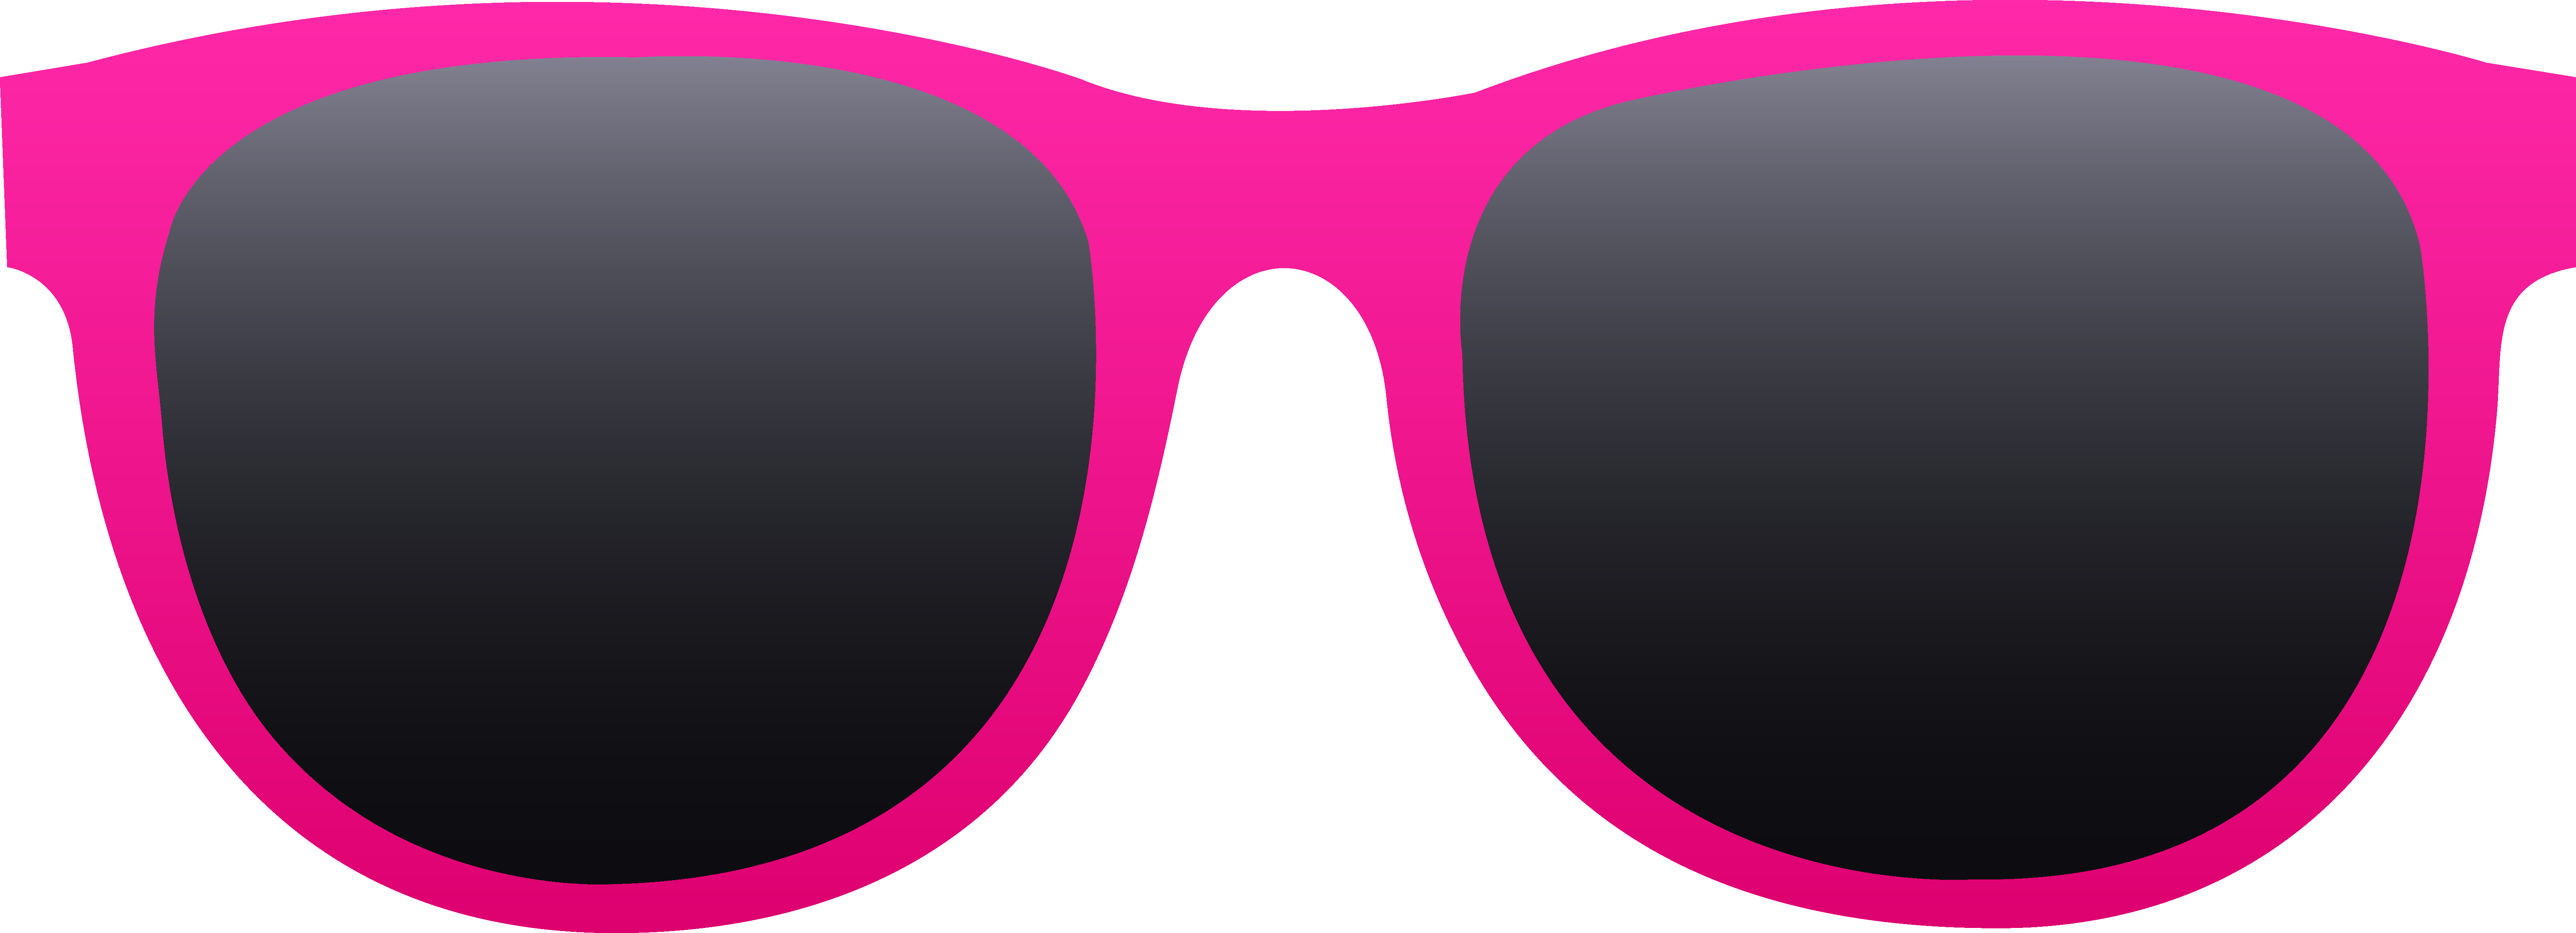 picture black and white stock Free clip art of a pair of hot pink sunglasses